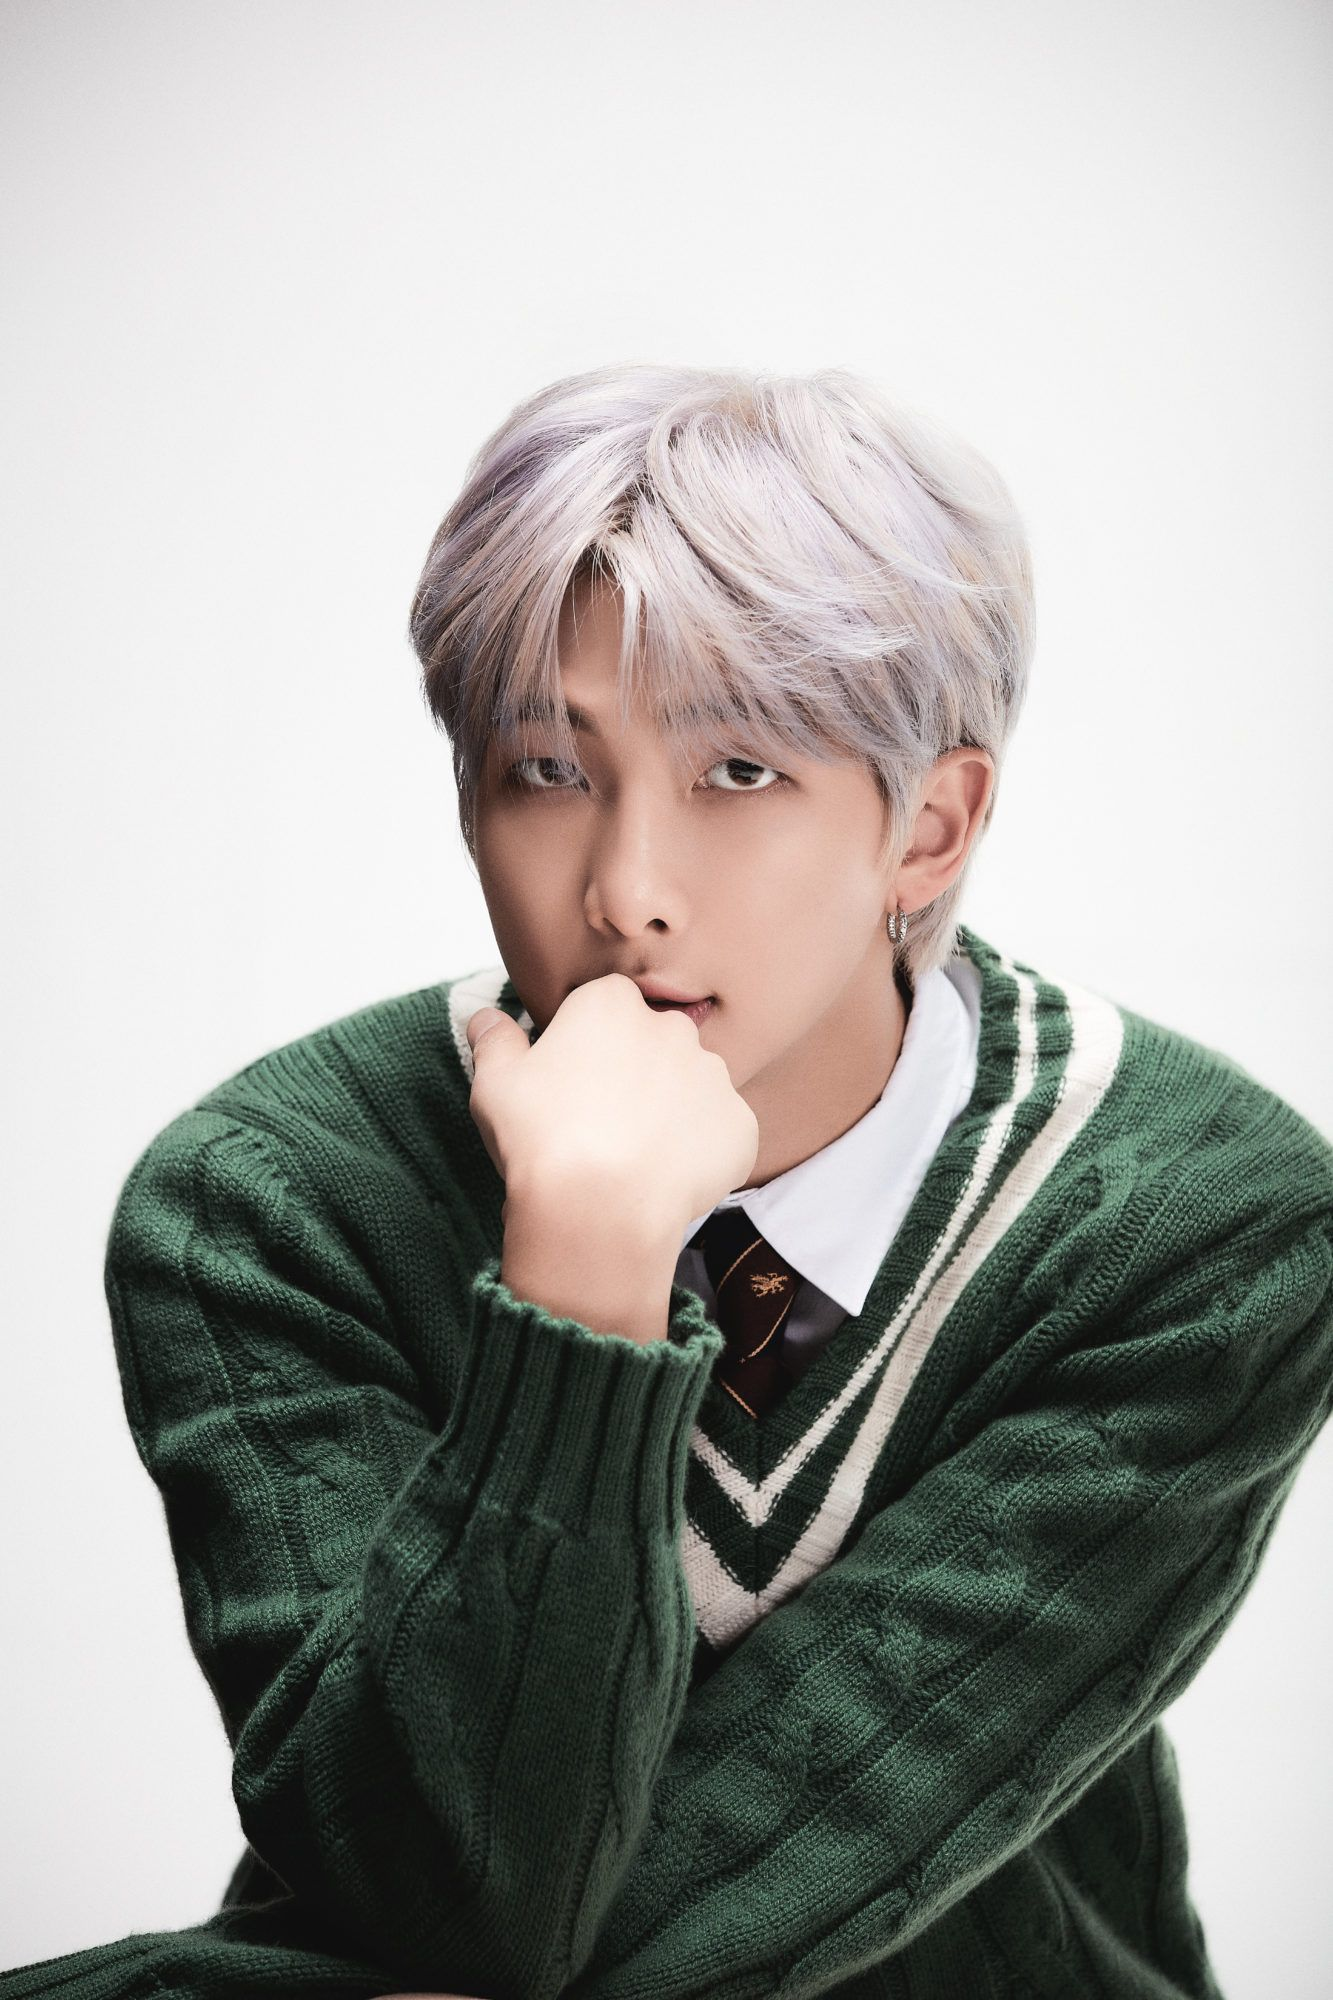 BTS Map Of The Soul 7 Profile Concept Photos (UHD/HR) | Bts concept photo,  Kim namjoon, Namjoon